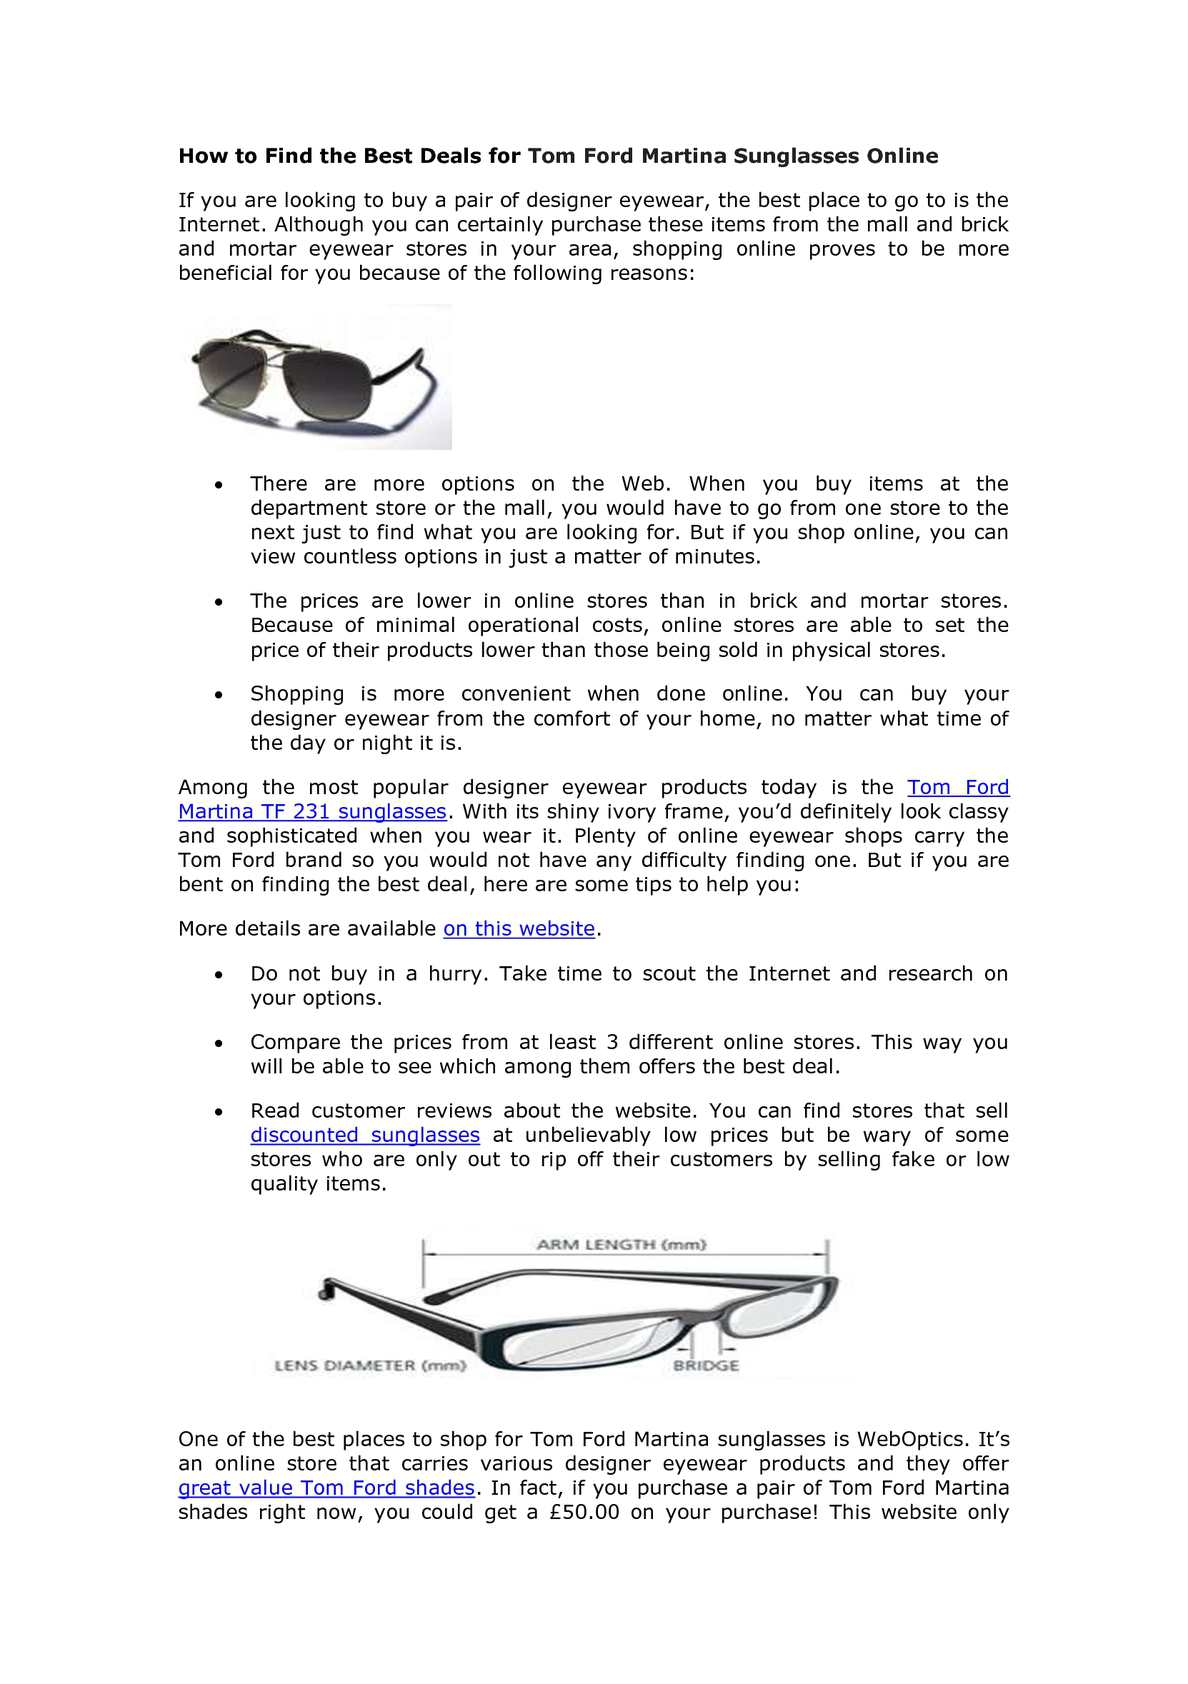 3784f55fba Calaméo - How to Find the Best Deals for Tom Ford Martina Sunglasses Online